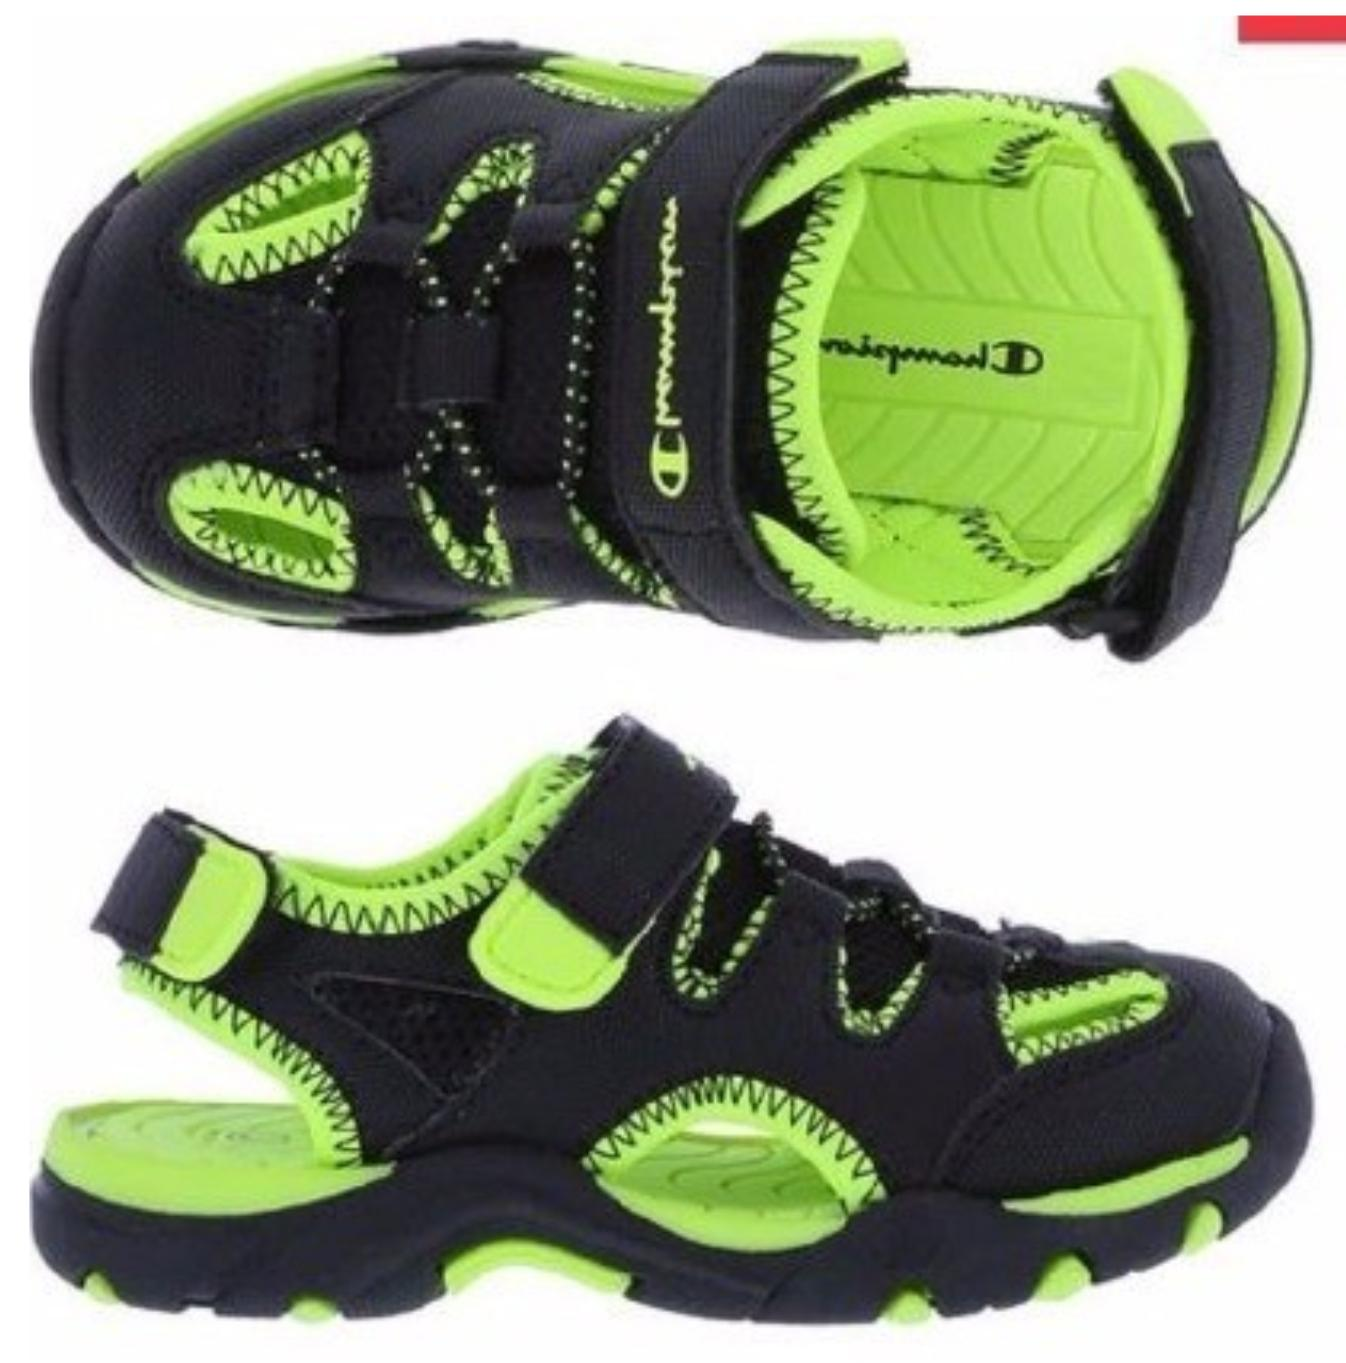 boys shoes fisherman sandals athletic slippers hiking